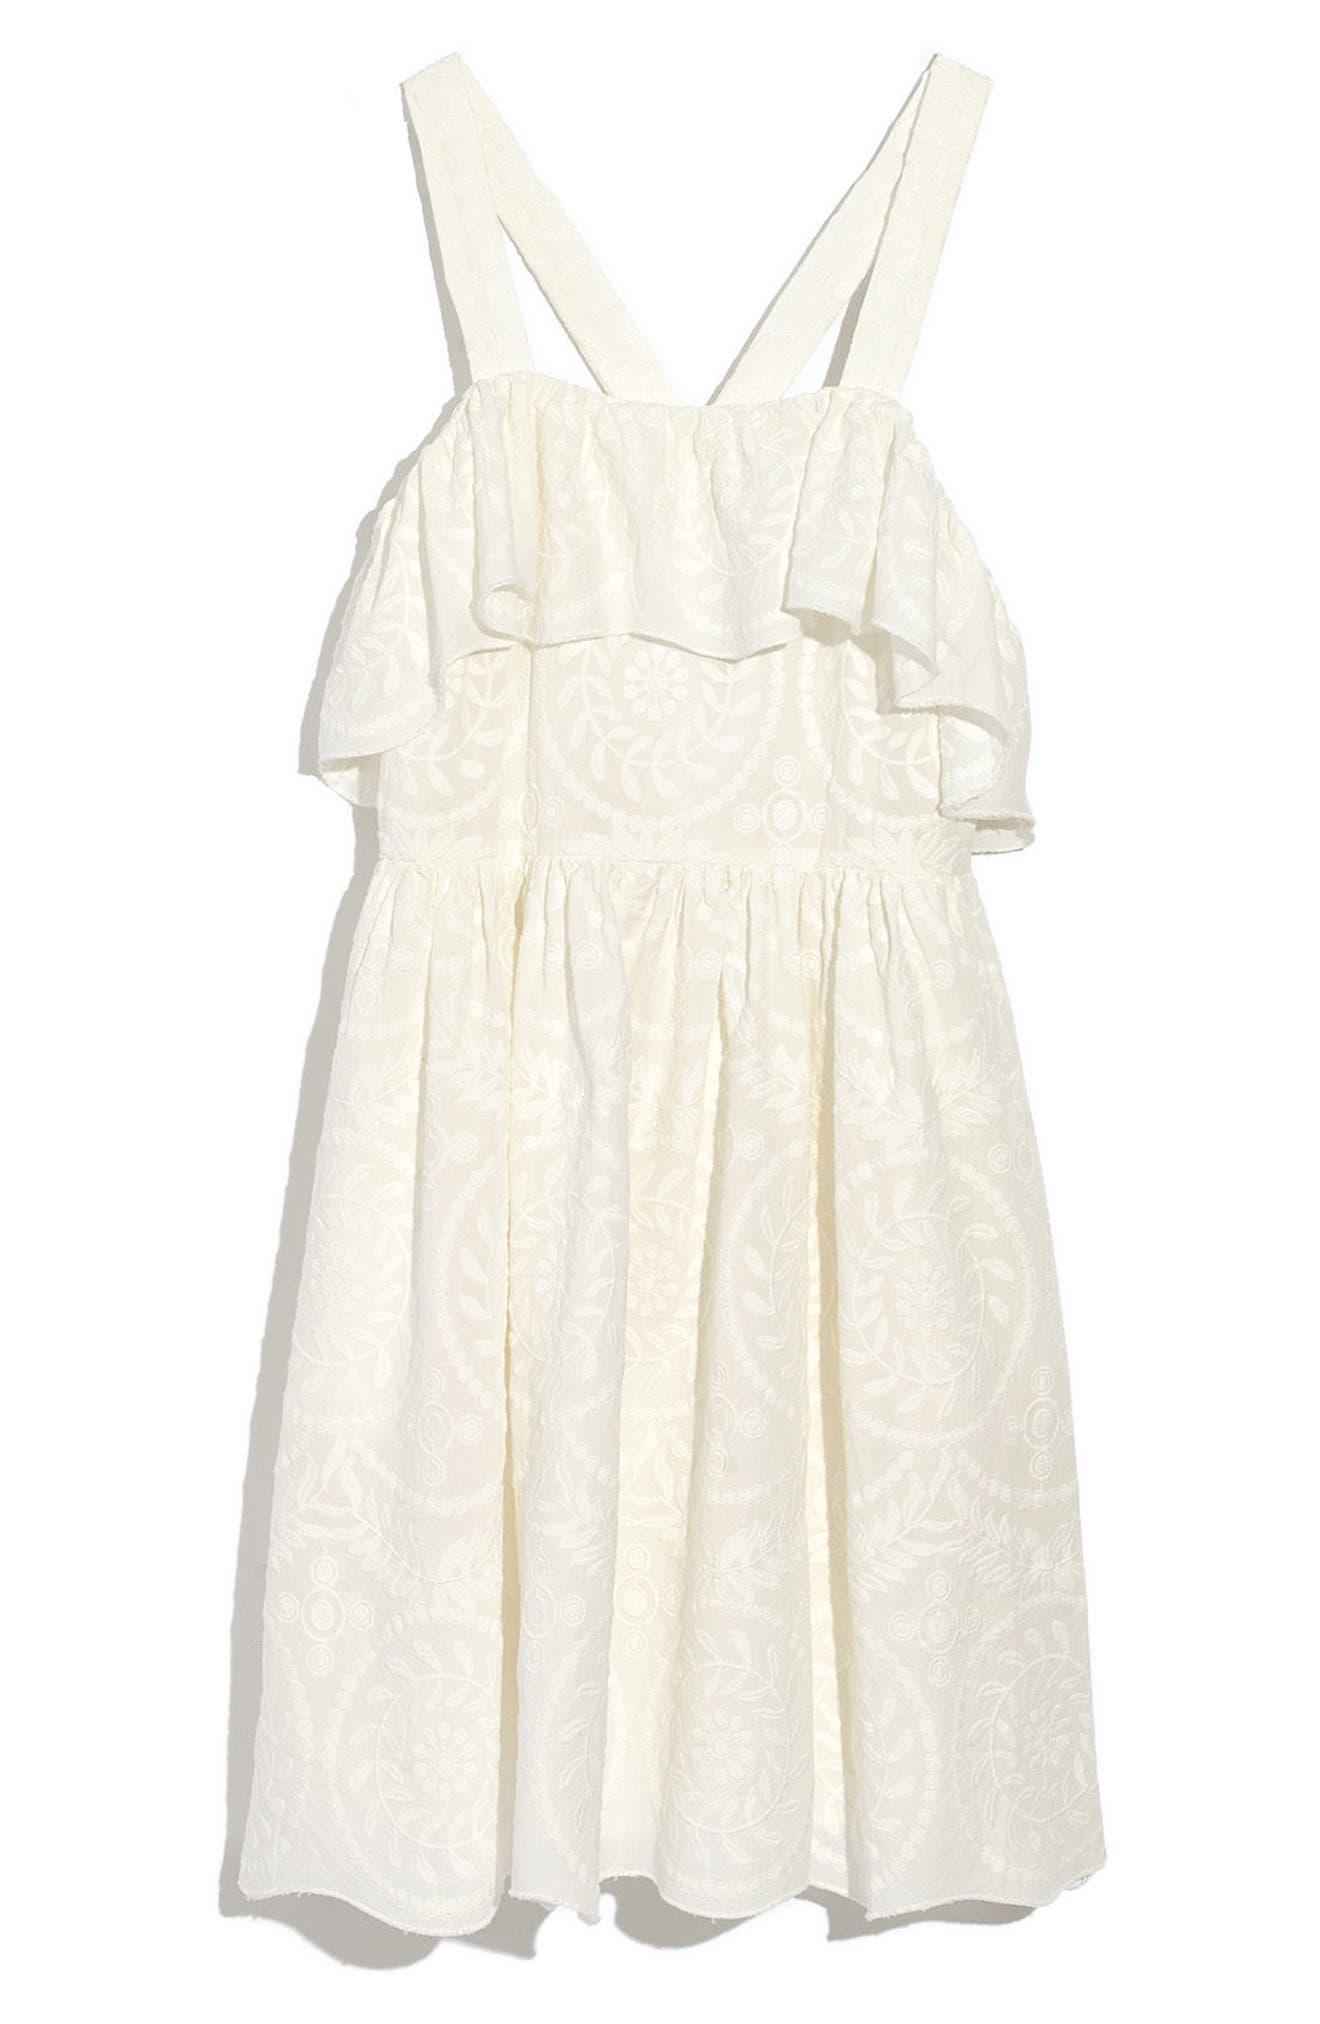 Embroidered Apron Ruffle Dress,                             Alternate thumbnail 3, color,                             White Wash